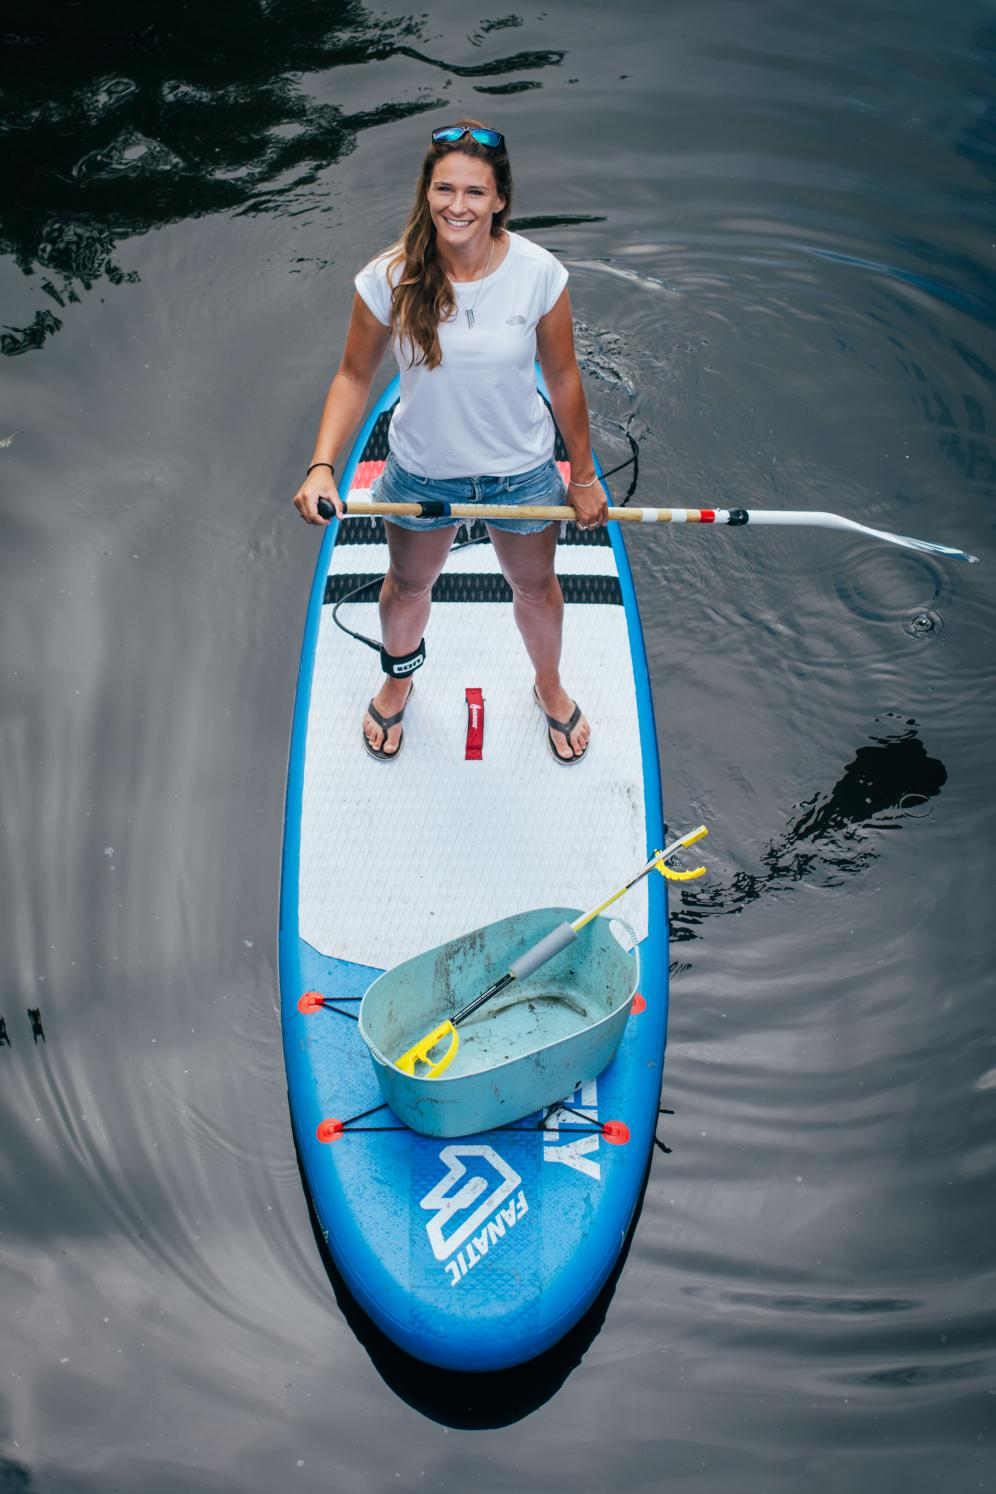 2016 - FIRST PERSON TO PADDLE BOARD THE ENTIRE LENGTH OF BRITAIN'S WATERWAYS